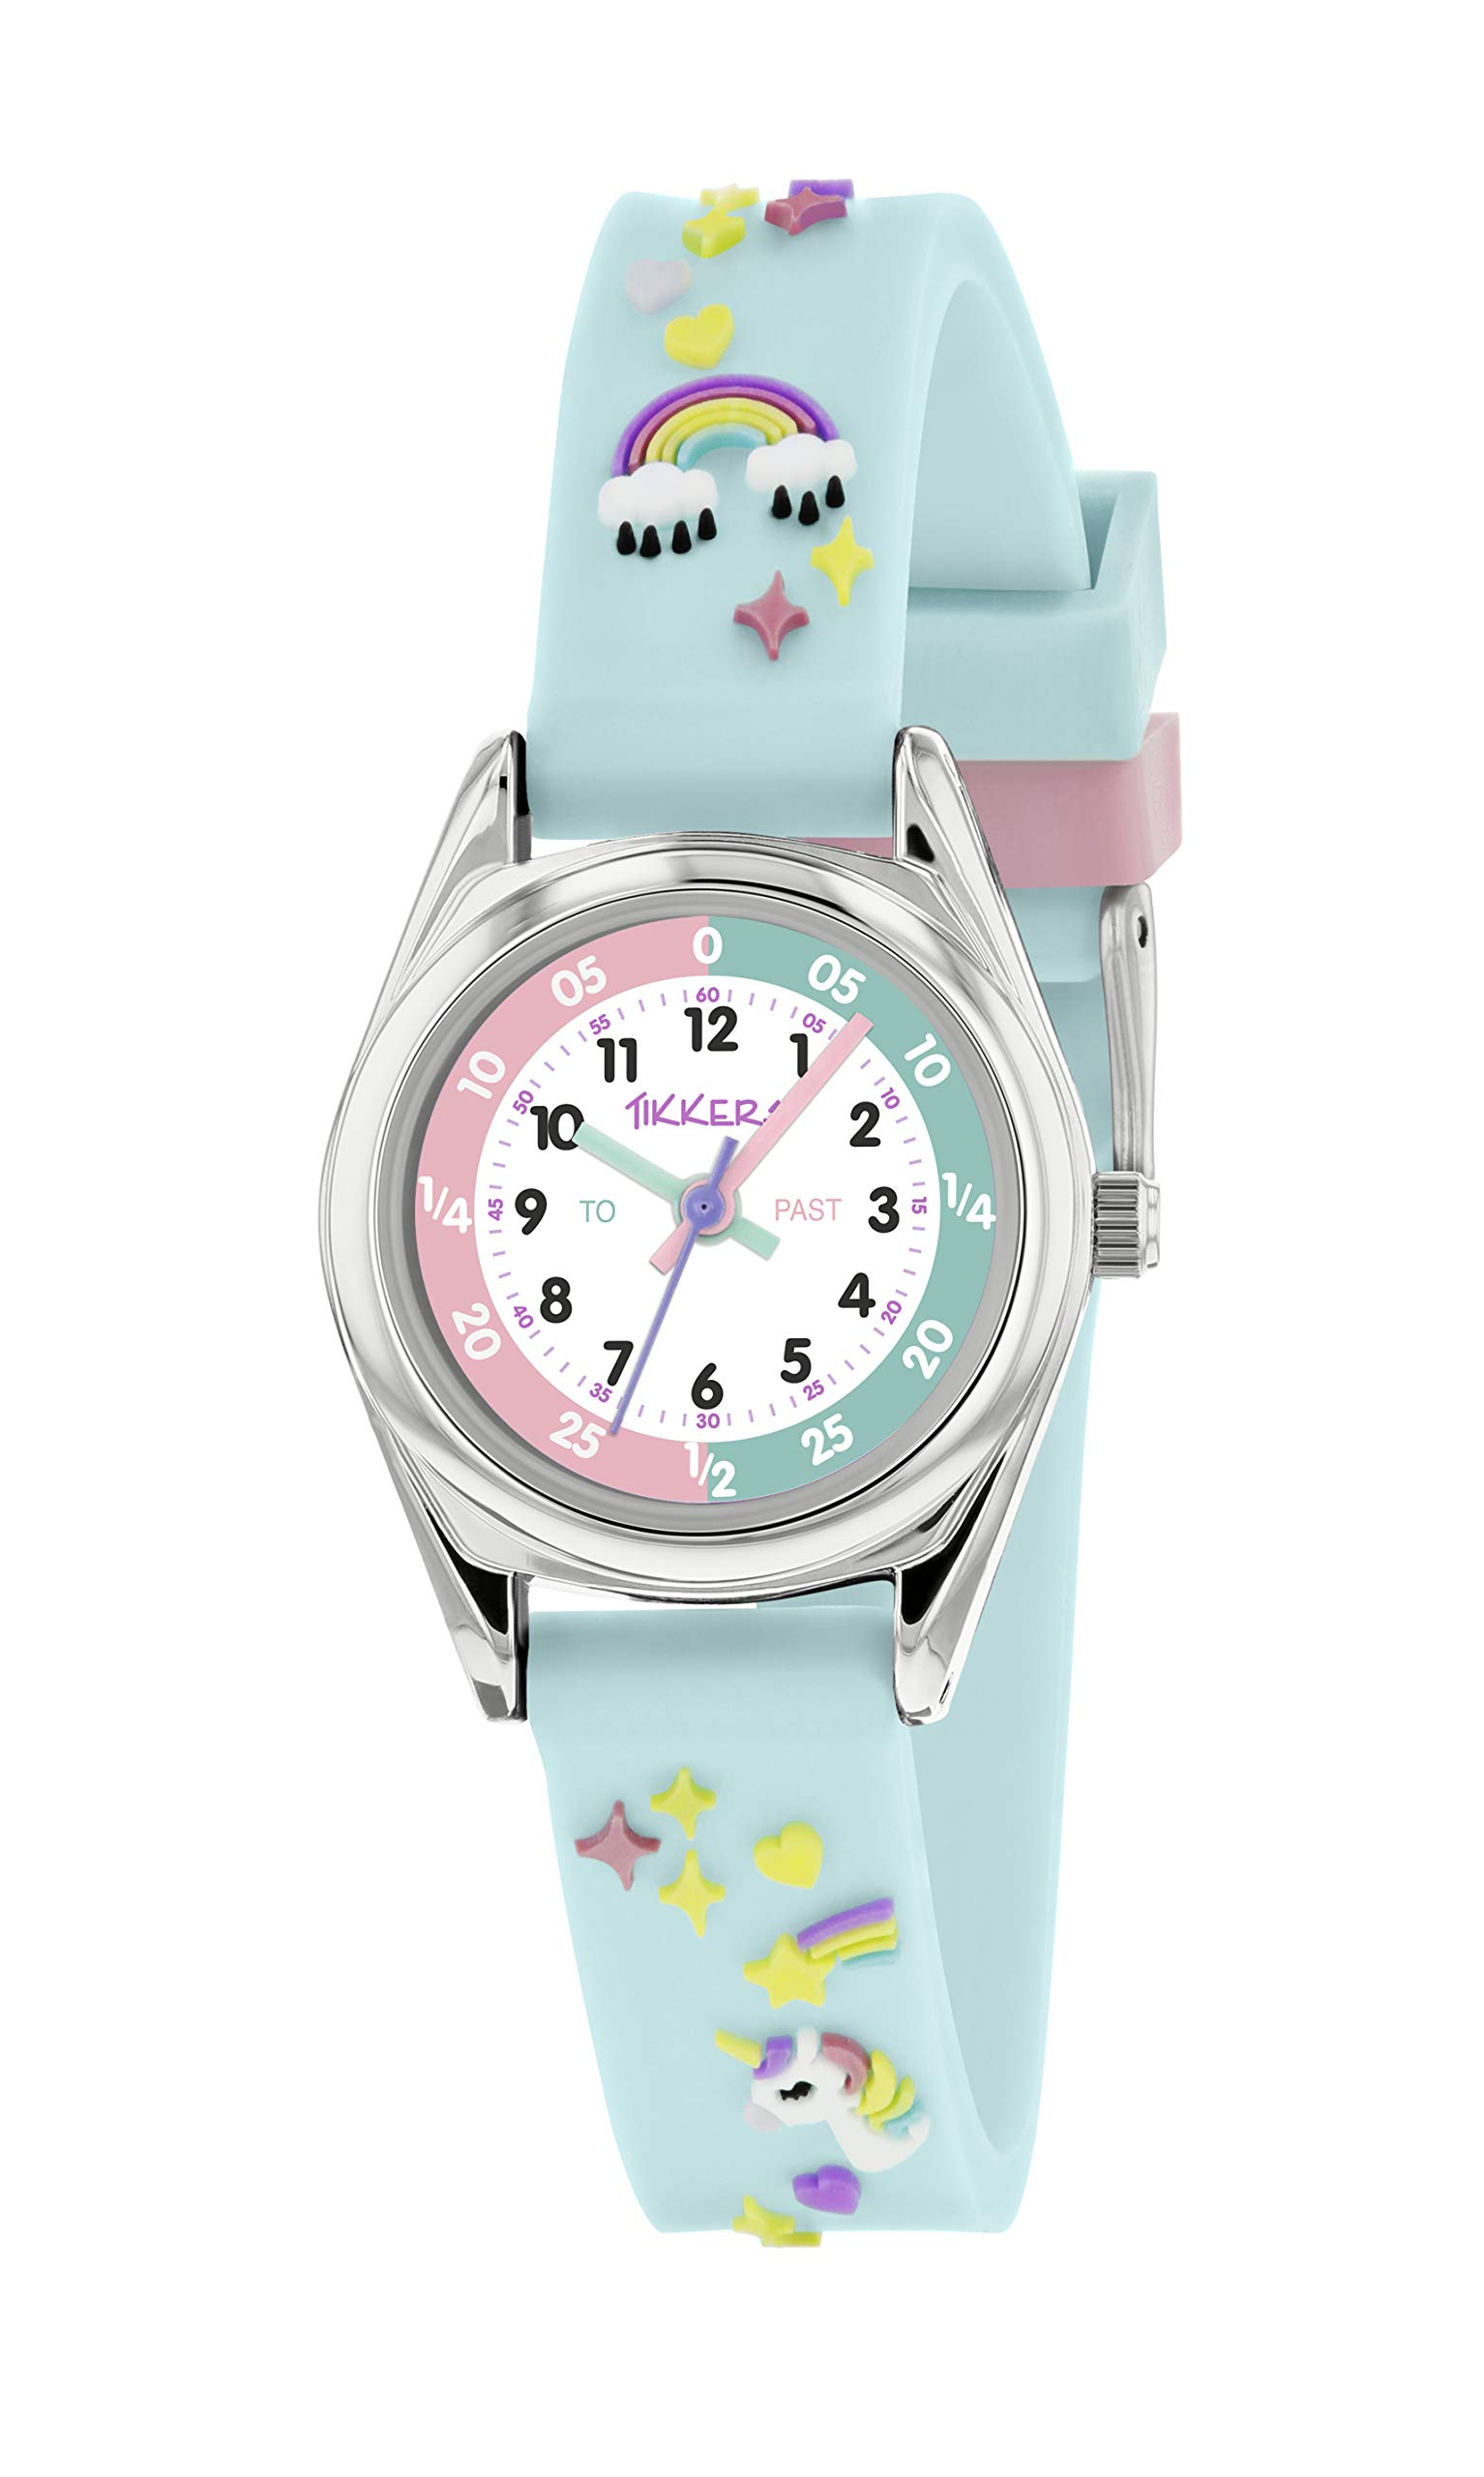 Tikkers Unicorn Theme Time Teacher Watch – NTK0019